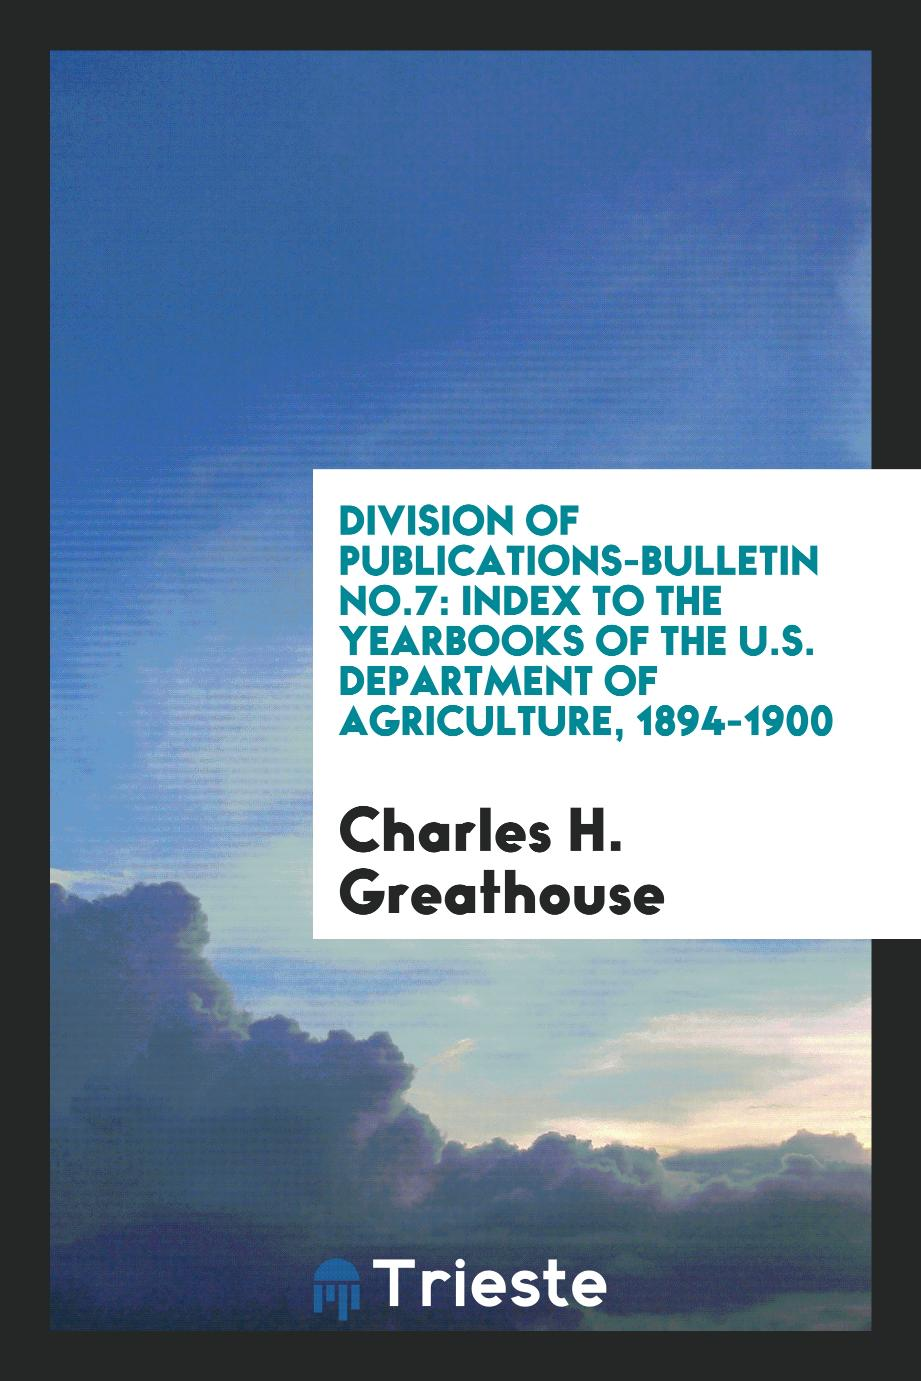 Division of Publications-Bulletin No.7: Index to the Yearbooks of the U.S. Department of Agriculture, 1894-1900